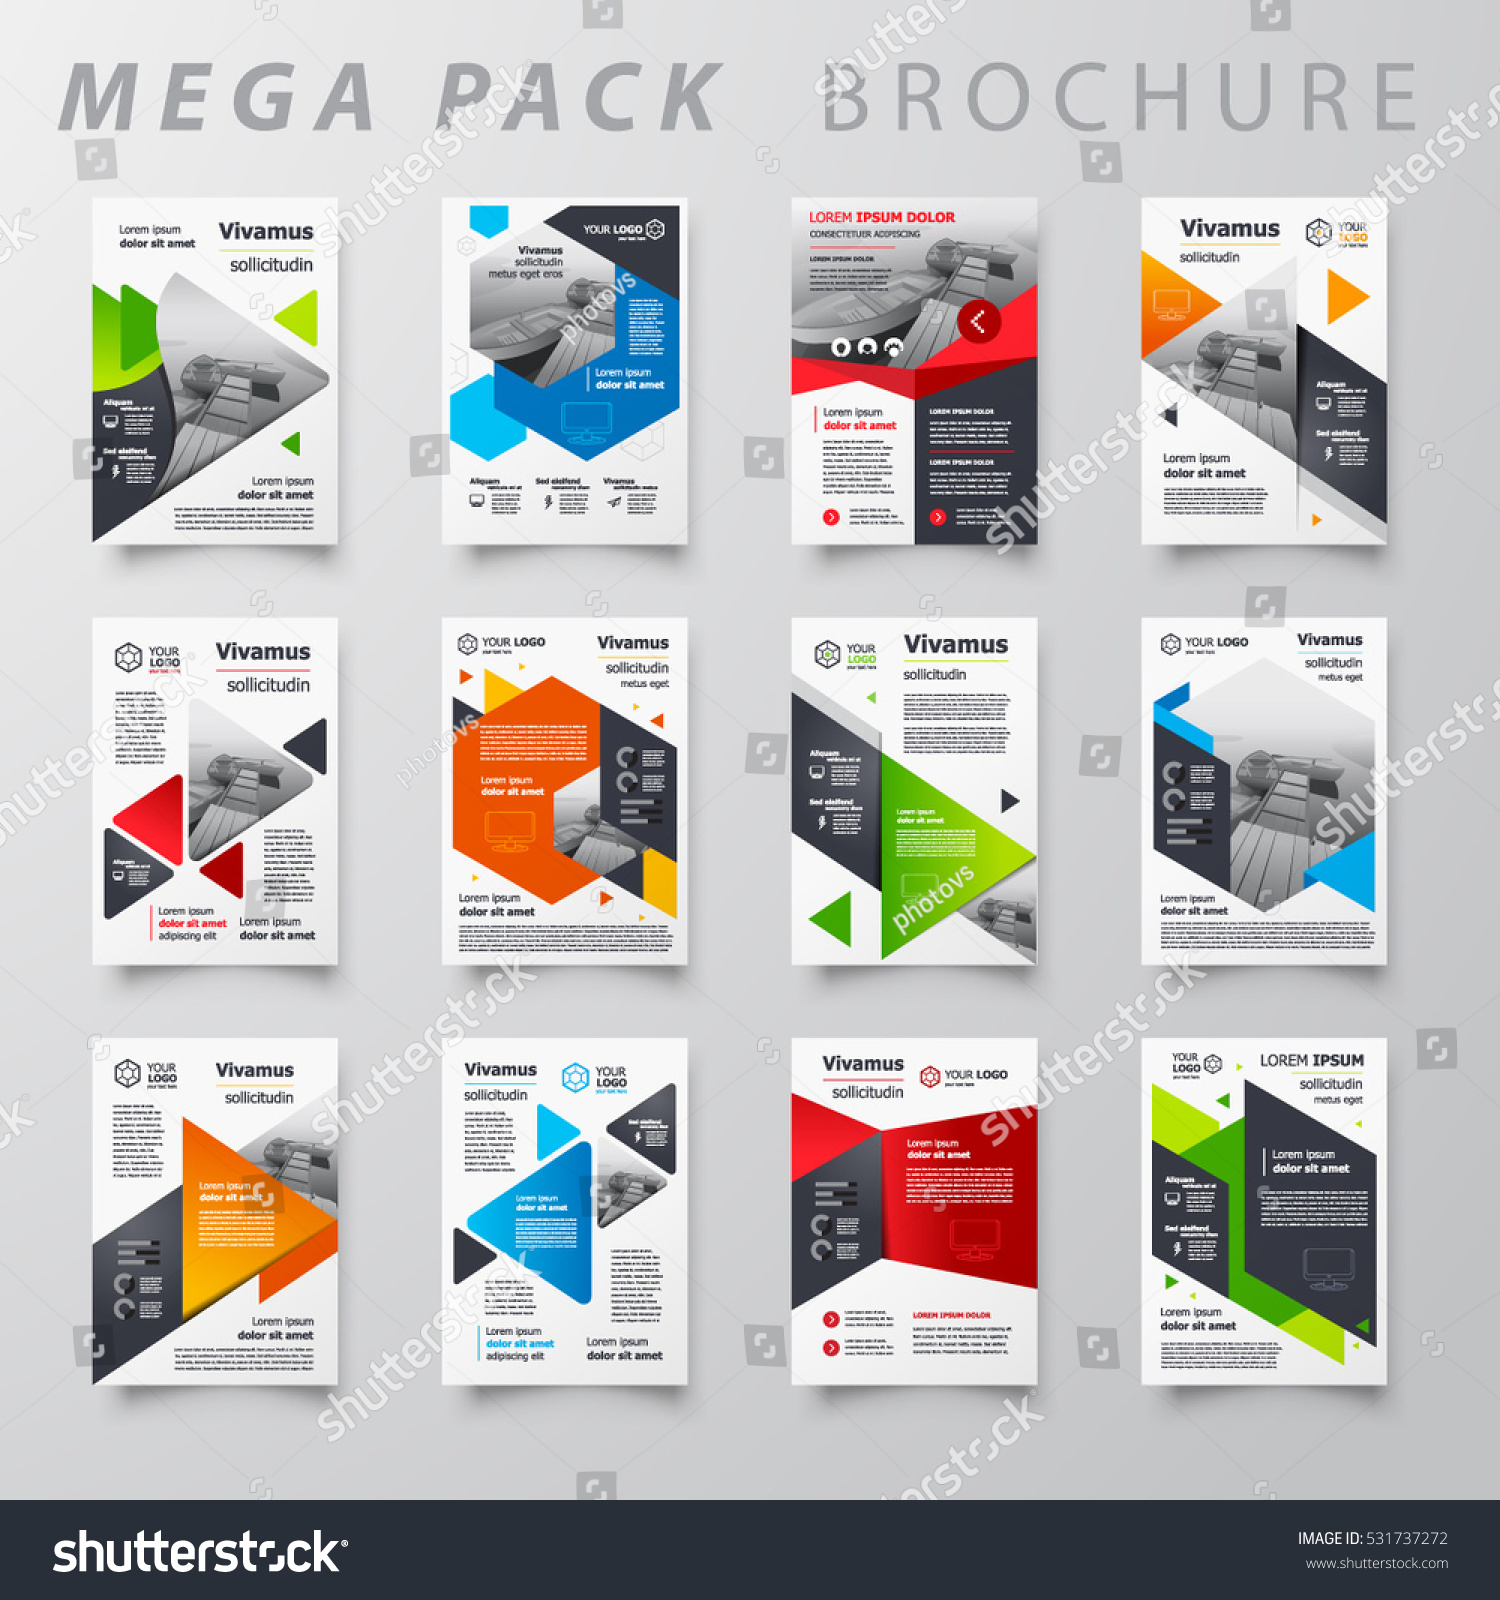 brochure size template - mega pack brochure design template flyer stock vector